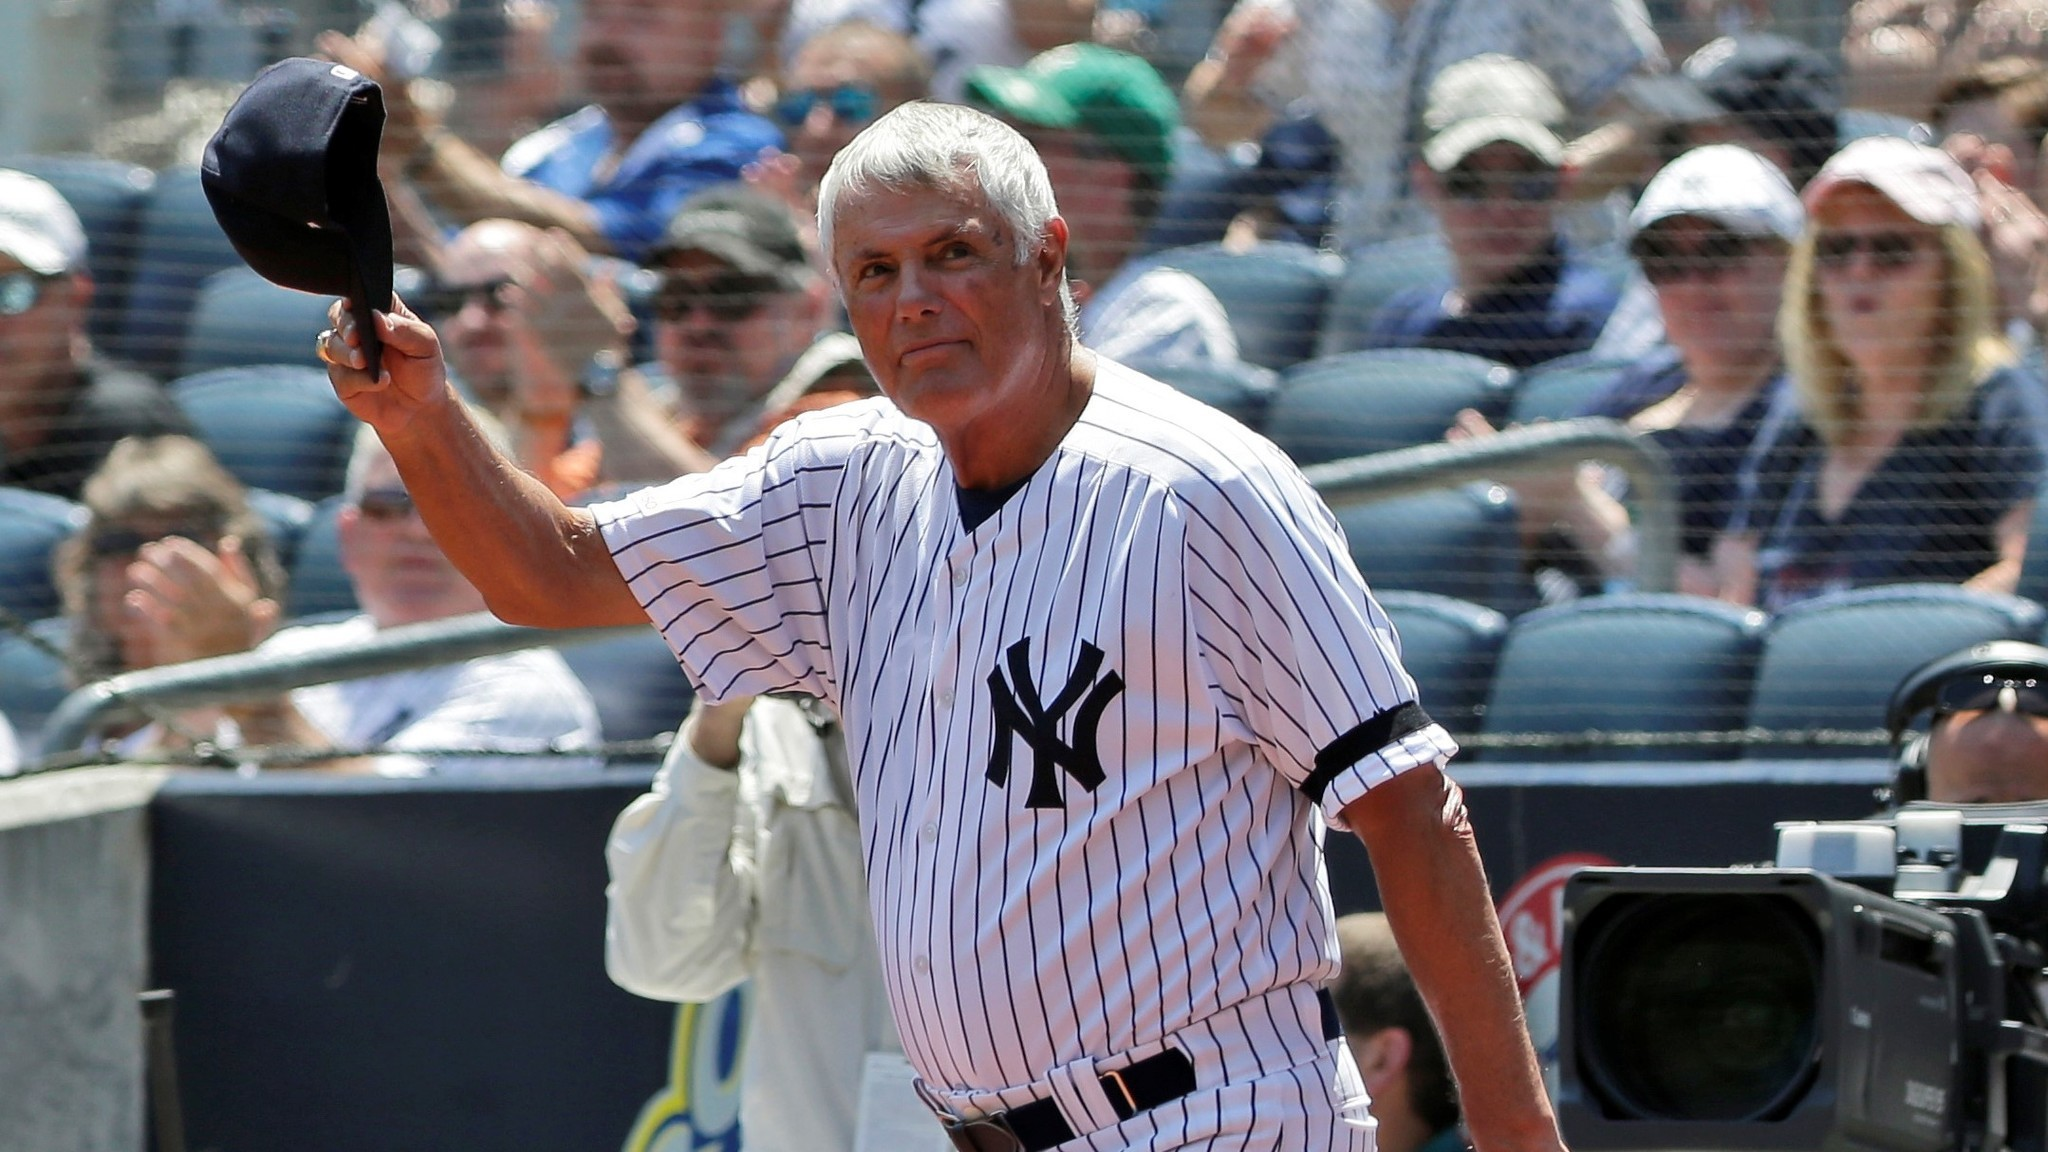 Kobe Bryant's death brought back memories of Thurman Munson for Lou Piniella